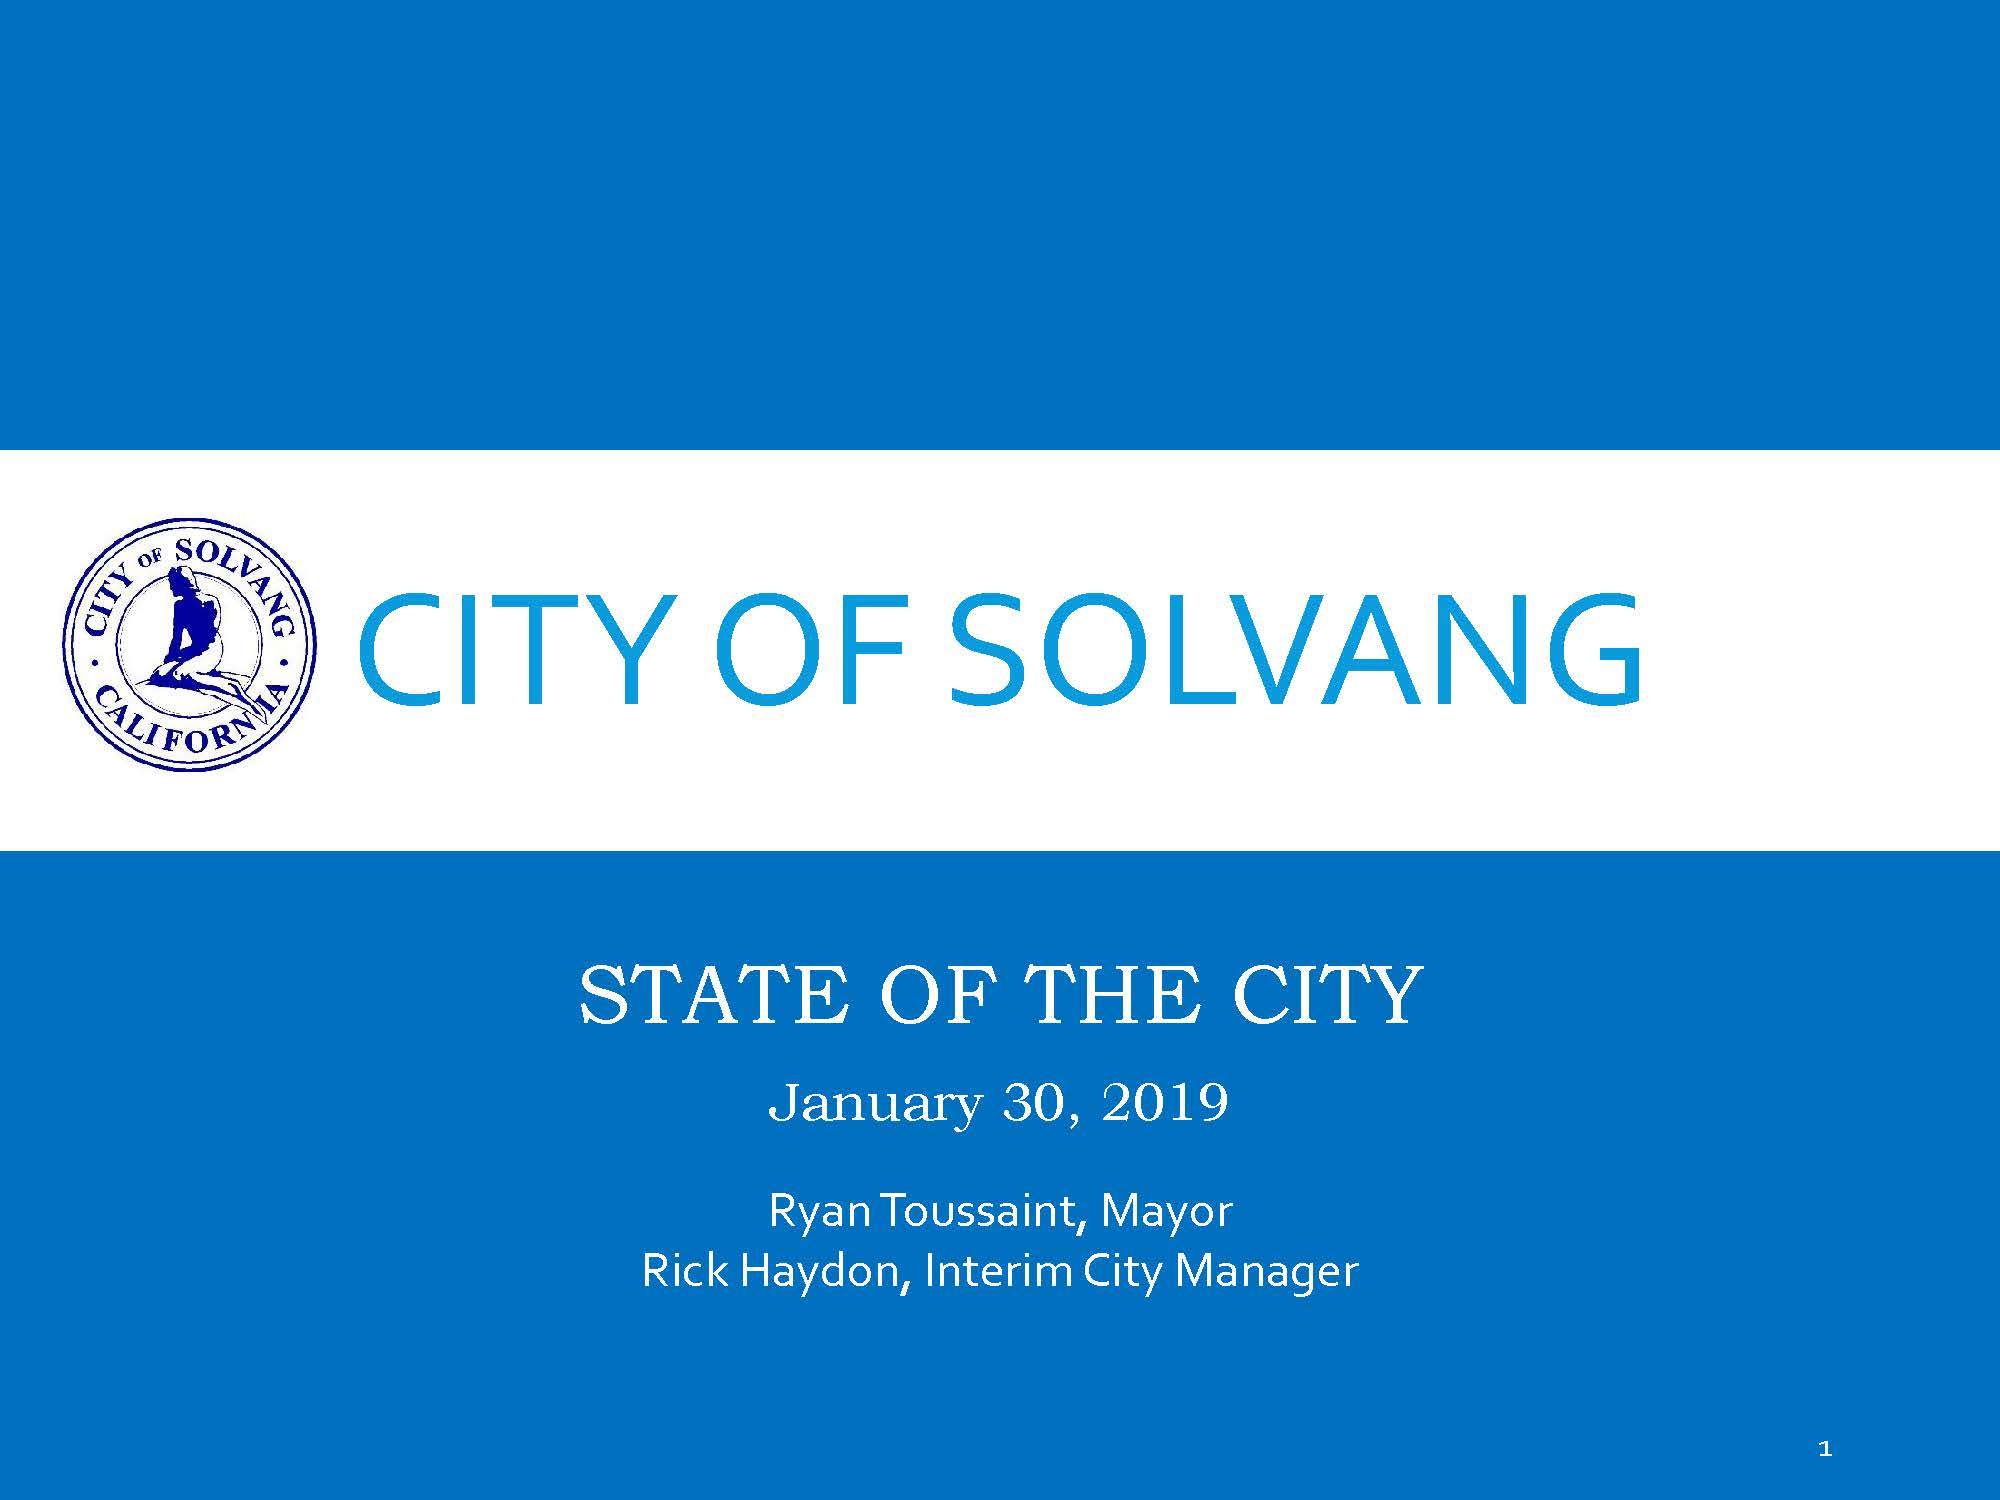 2019 State of the City pic